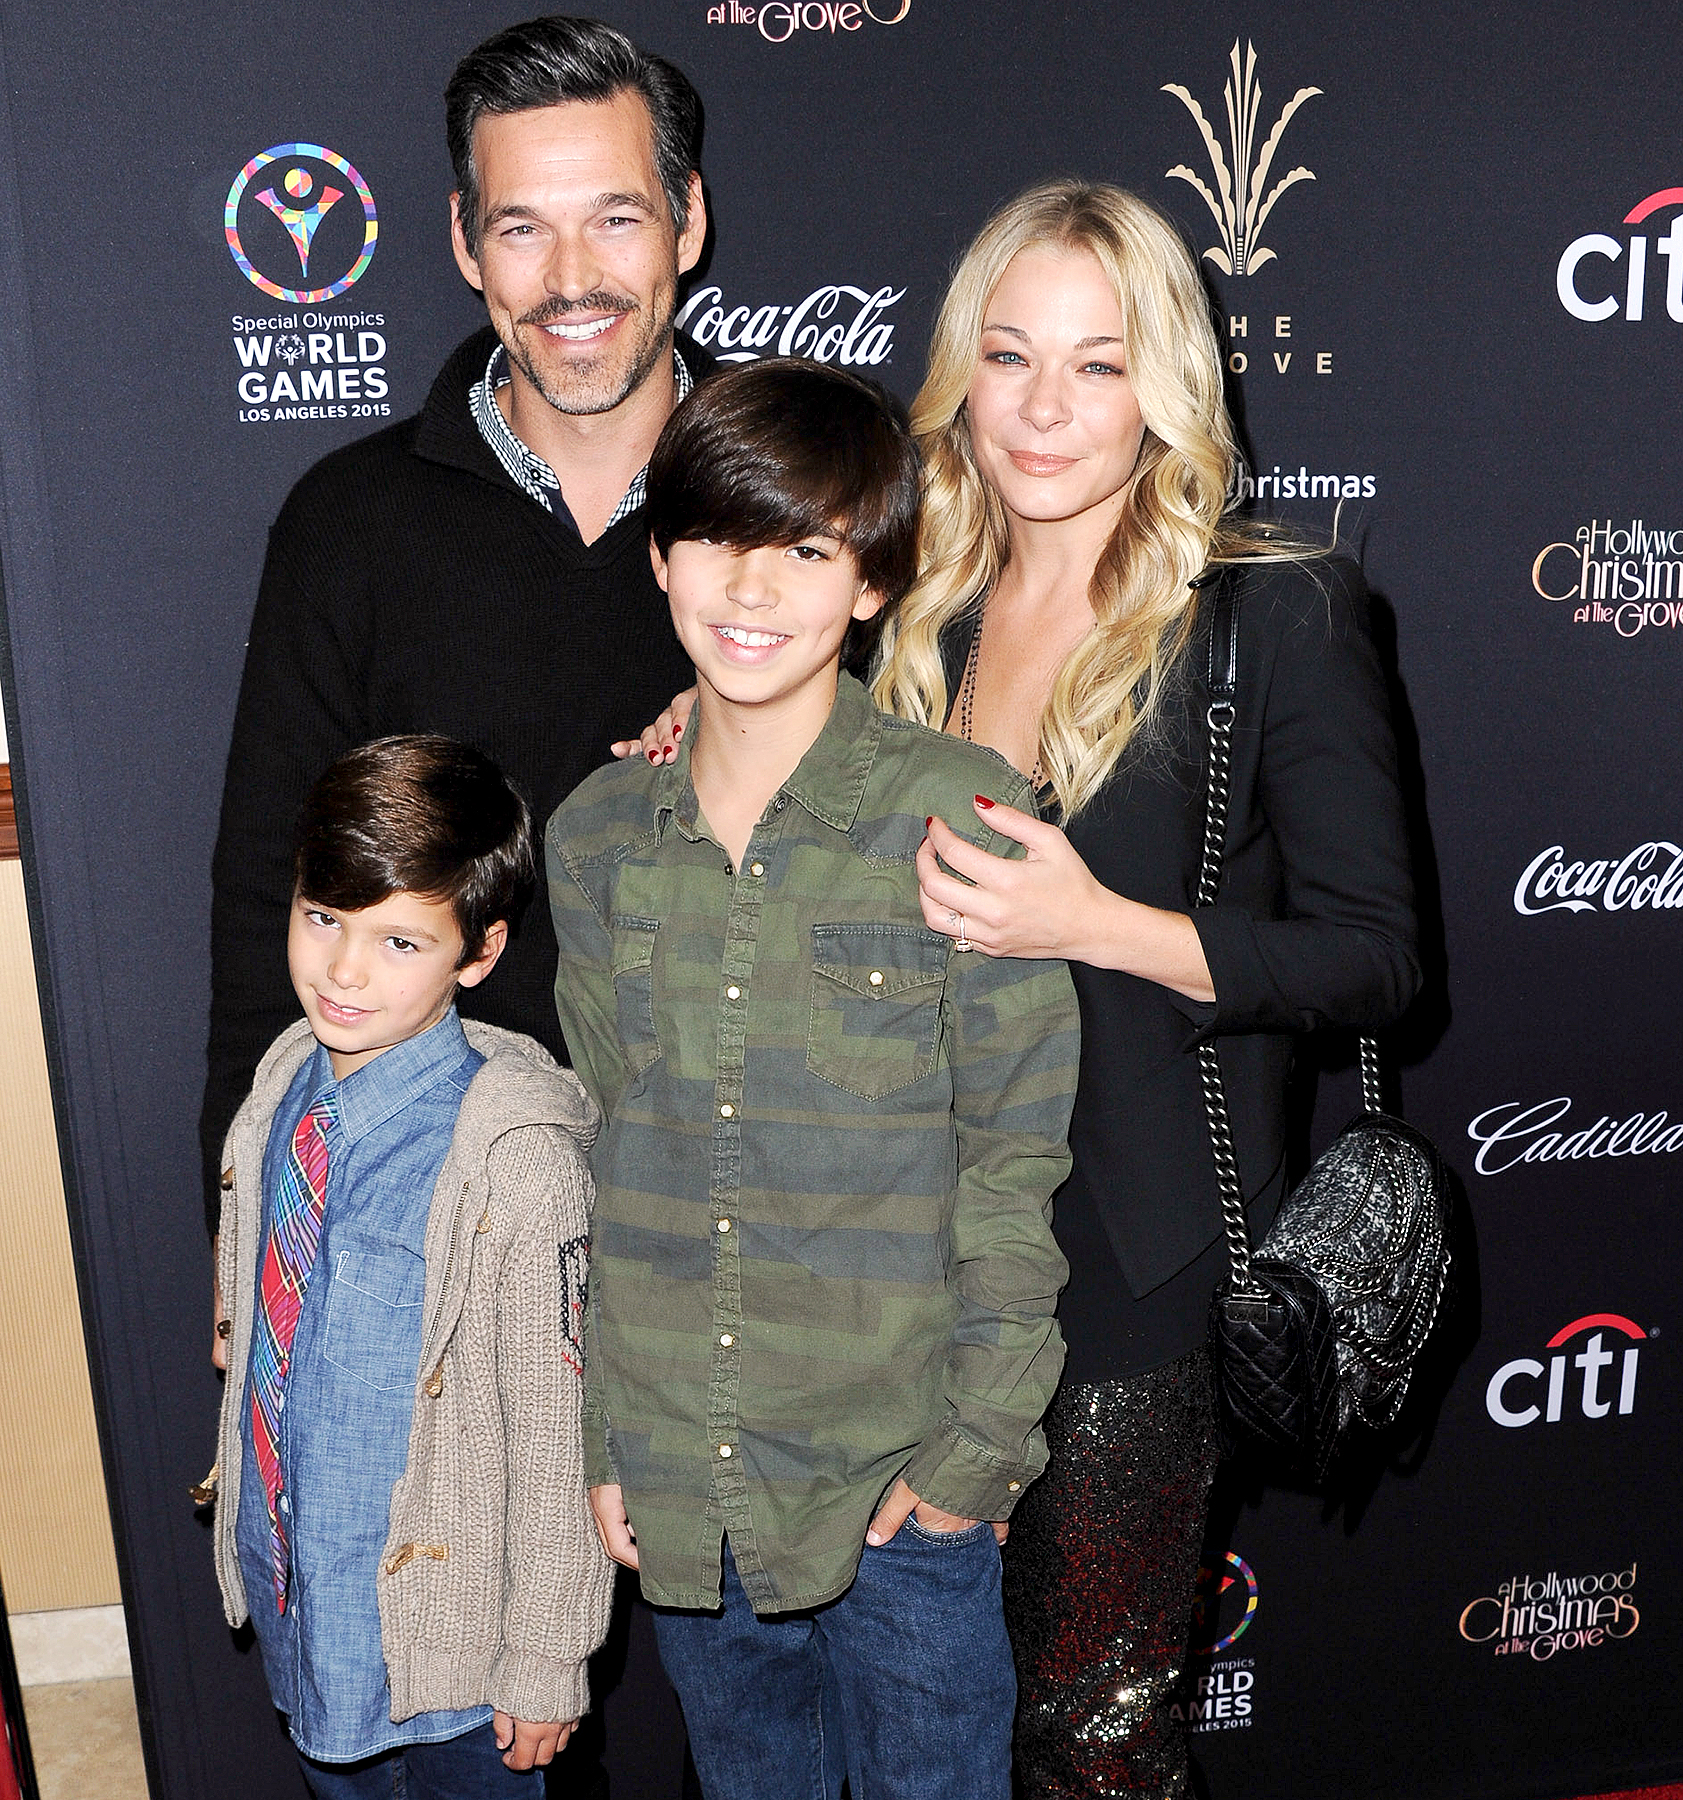 Eddie Cibrian, LeAnn Rimes, Mason Edward Cibrian and Jake Austin Cibrian attend The Grove's 12th Annual Christmas Tree Lighting Spectacular at The Grove on November 16, 2014 in Los Angeles, California.